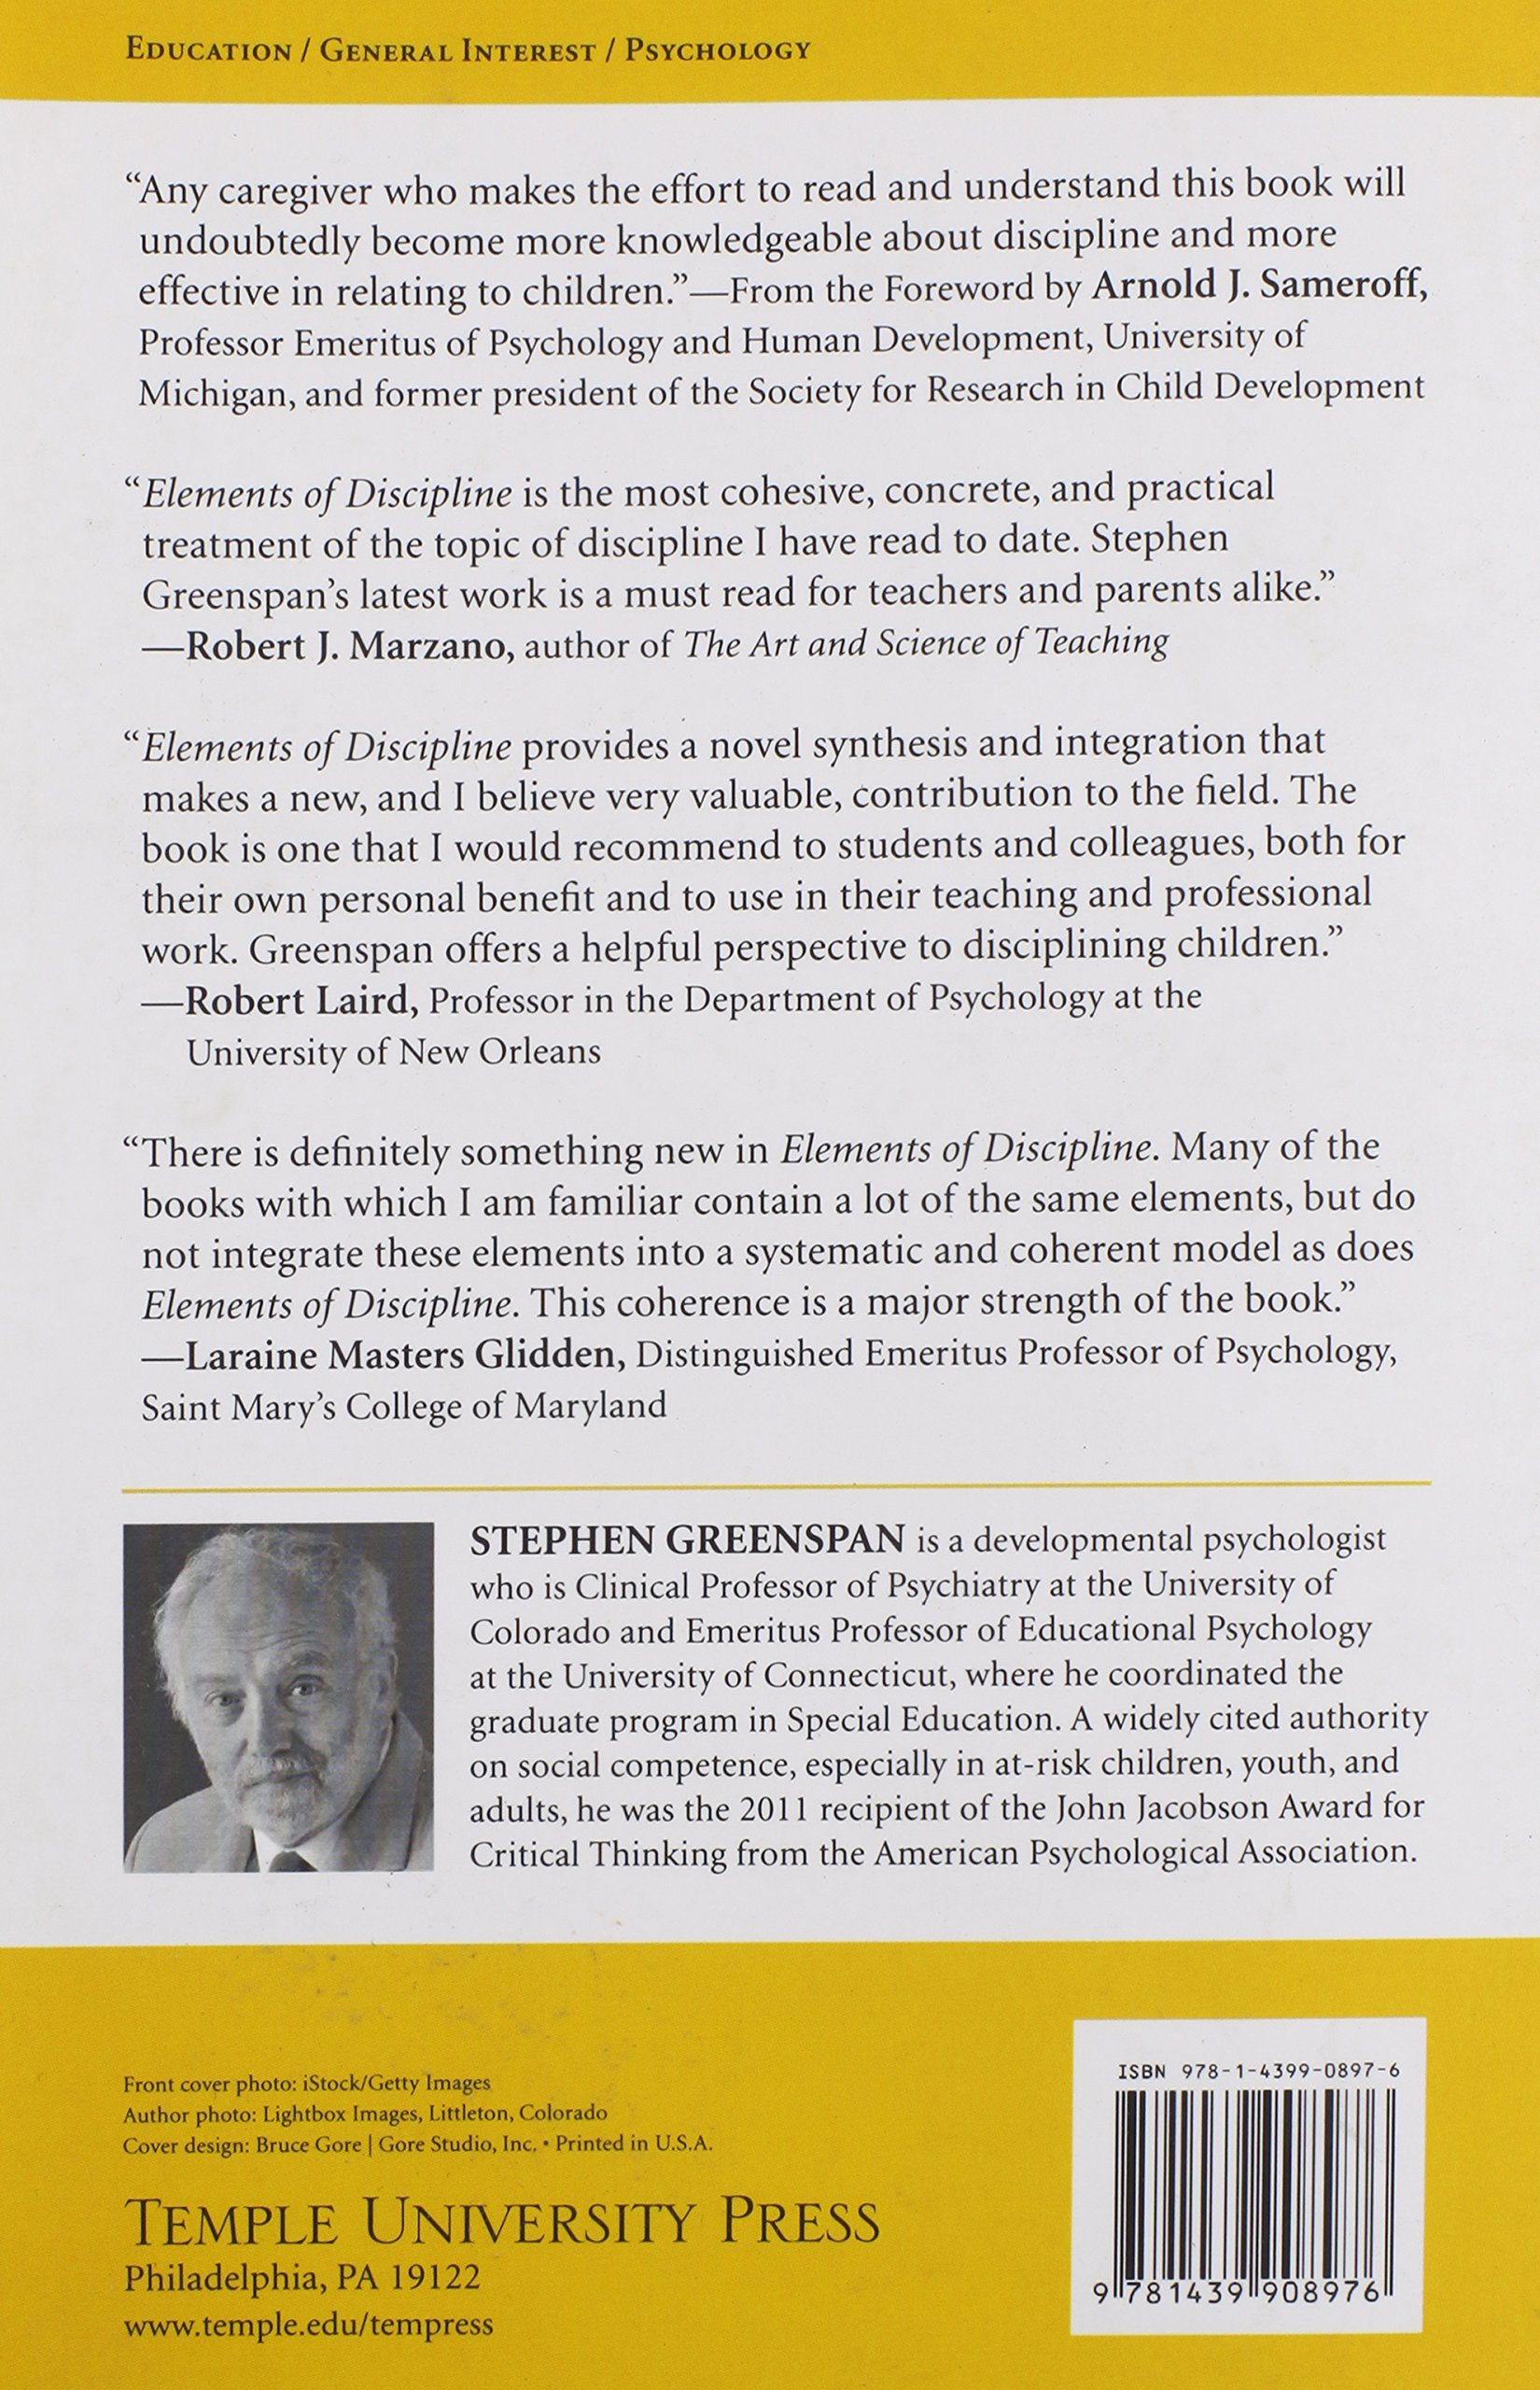 elements of discipline nine principles for teachers and parents elements of discipline nine principles for teachers and parents stephen greenspan 9781439908976 com books